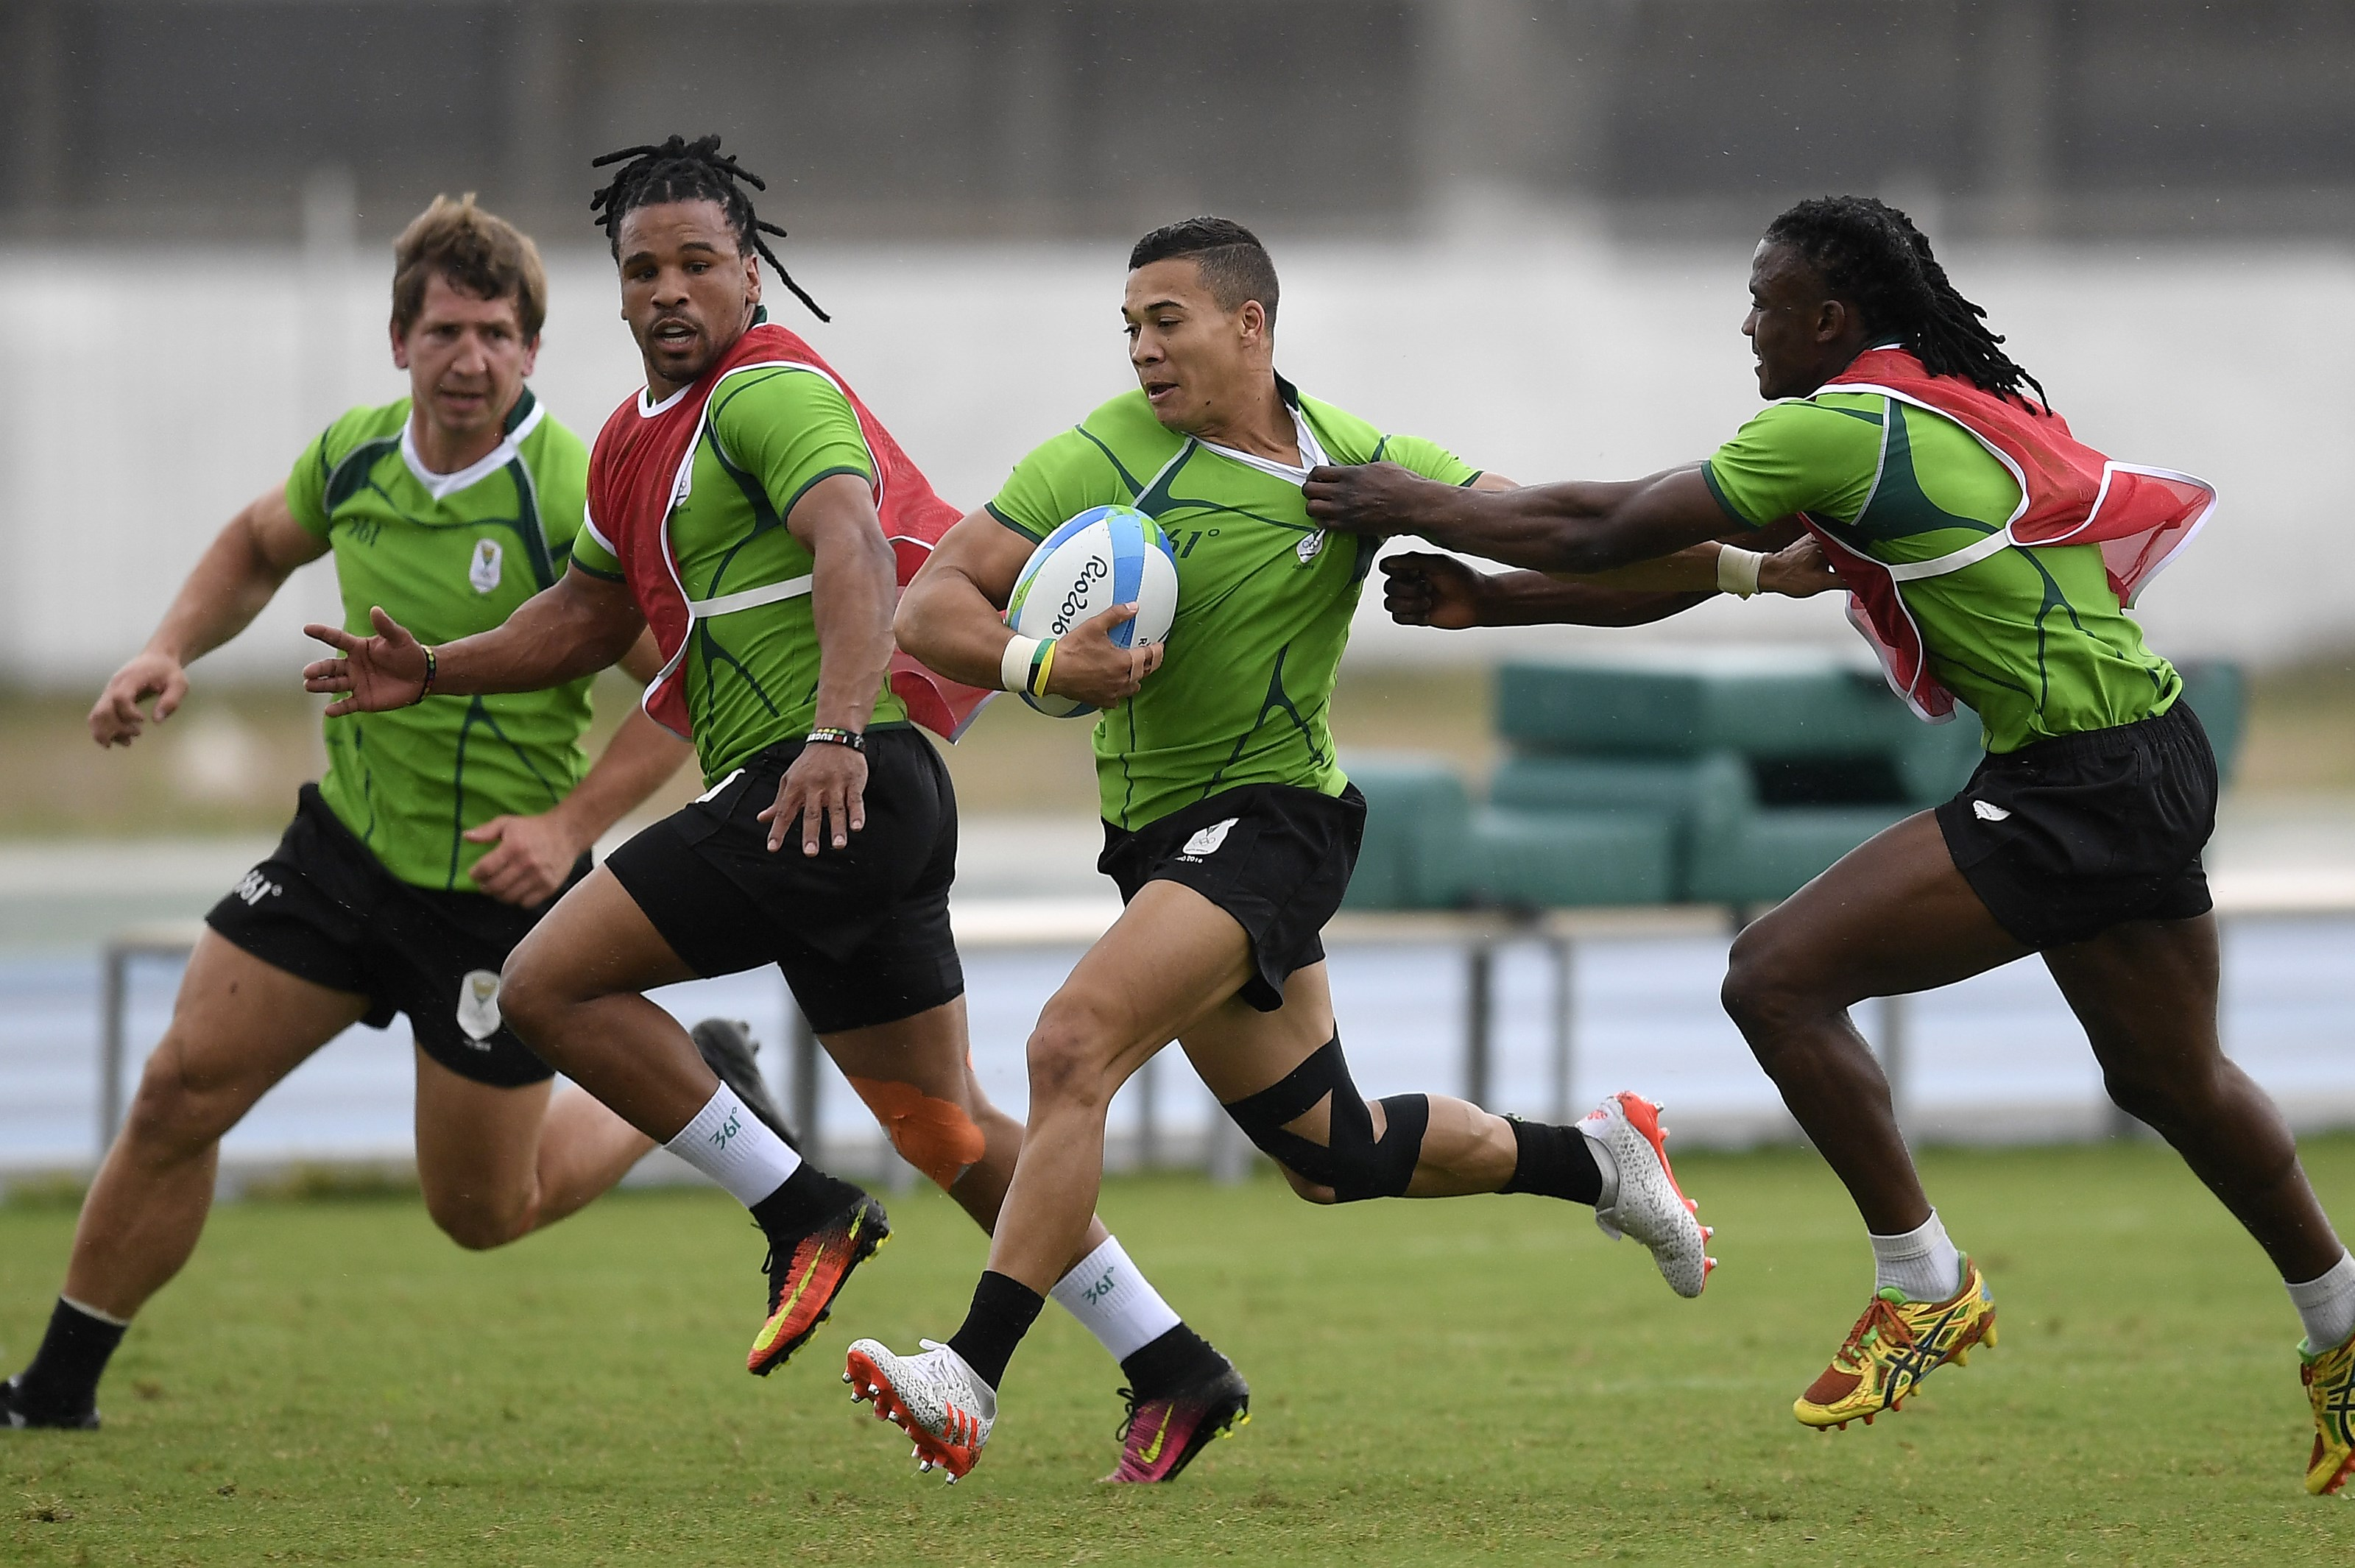 South Africa's Cheslin Kolbe runs with the ball during a men's rugby sevens team training session ahead of the 2016 Summer Olympics in Rio de Janeiro, Brazil, Wednesday, Aug. 3, 2016. (AP Photo/Martin Meissner)